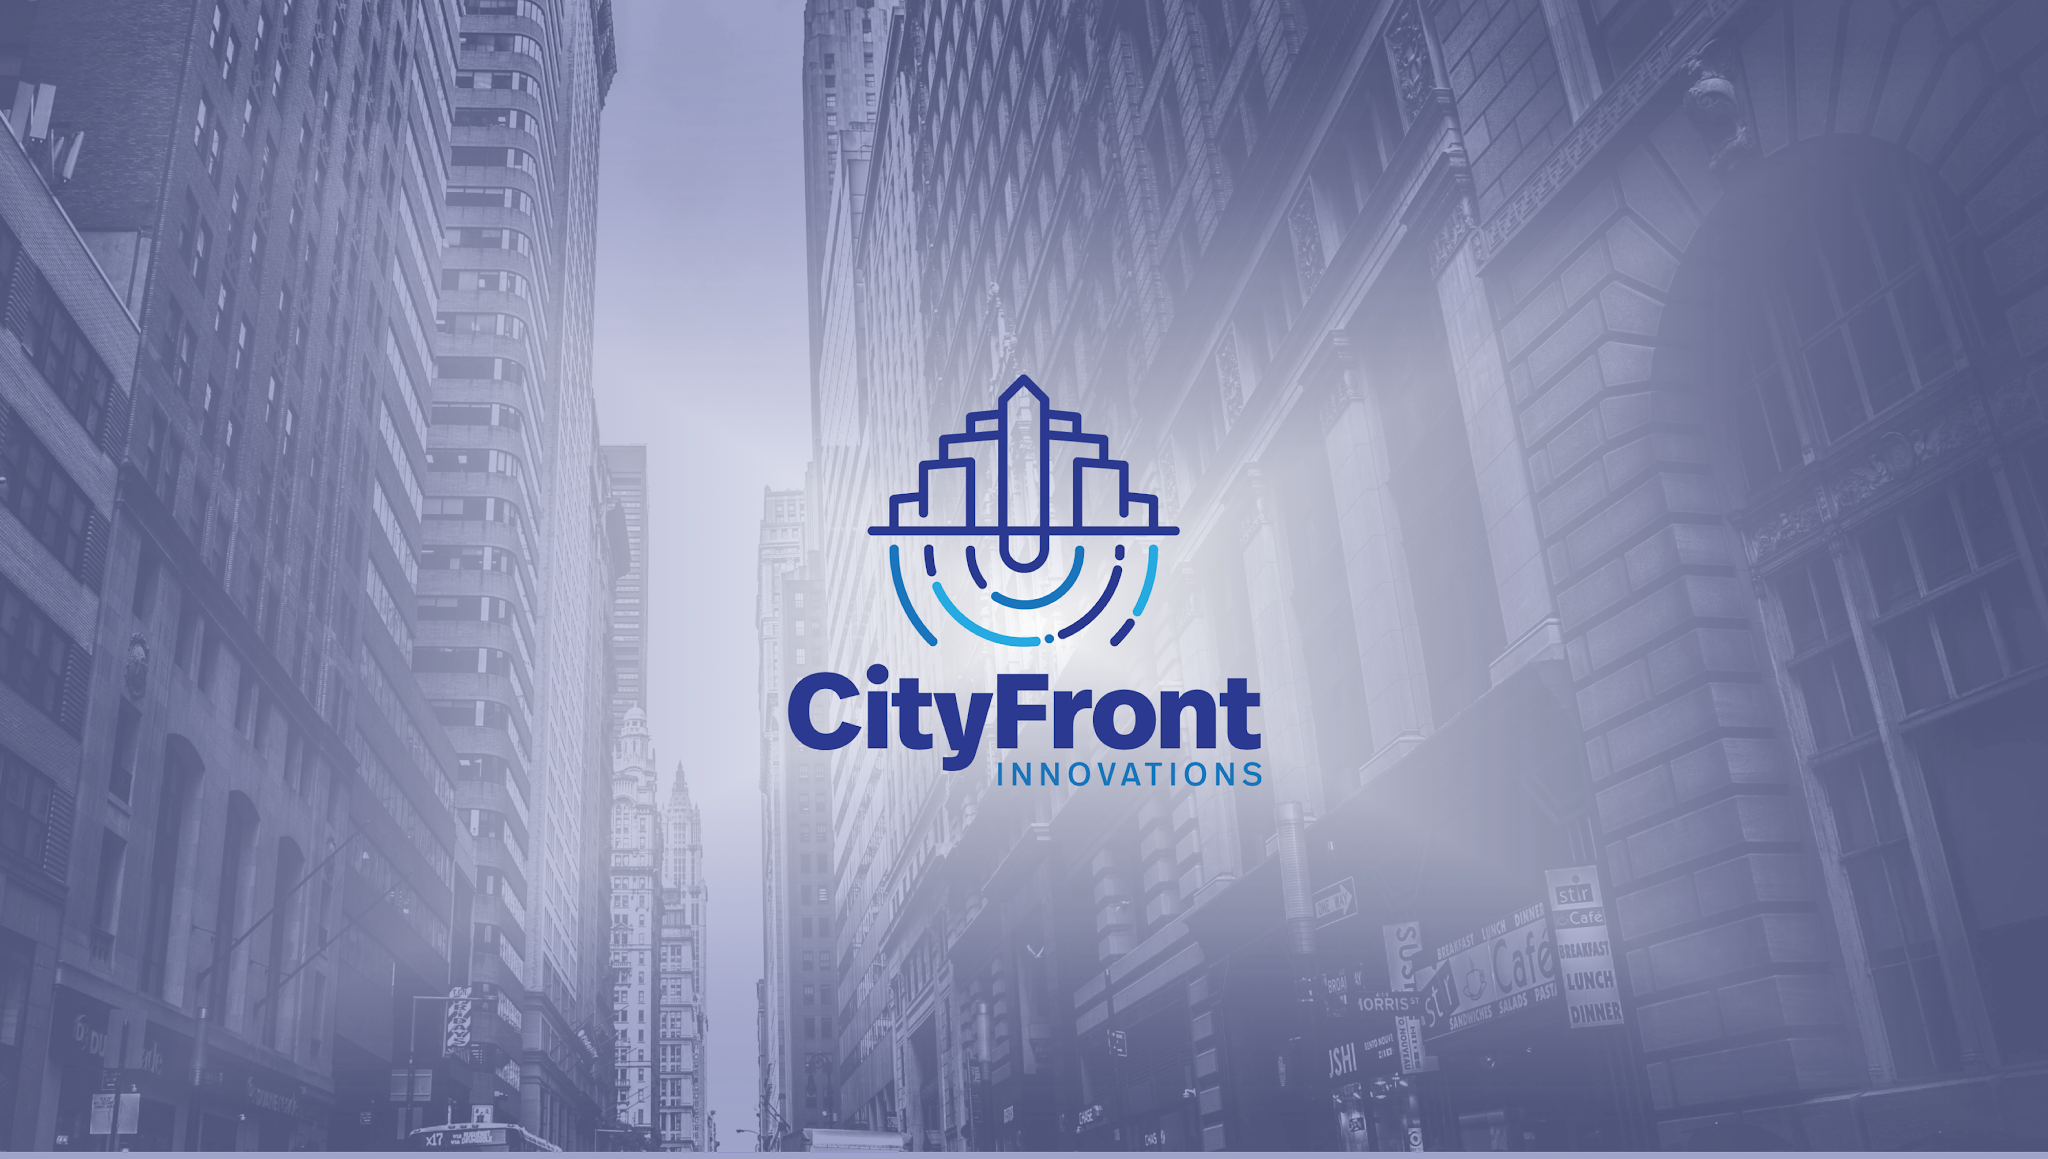 A photo of a large cityscape with the CityFront logo